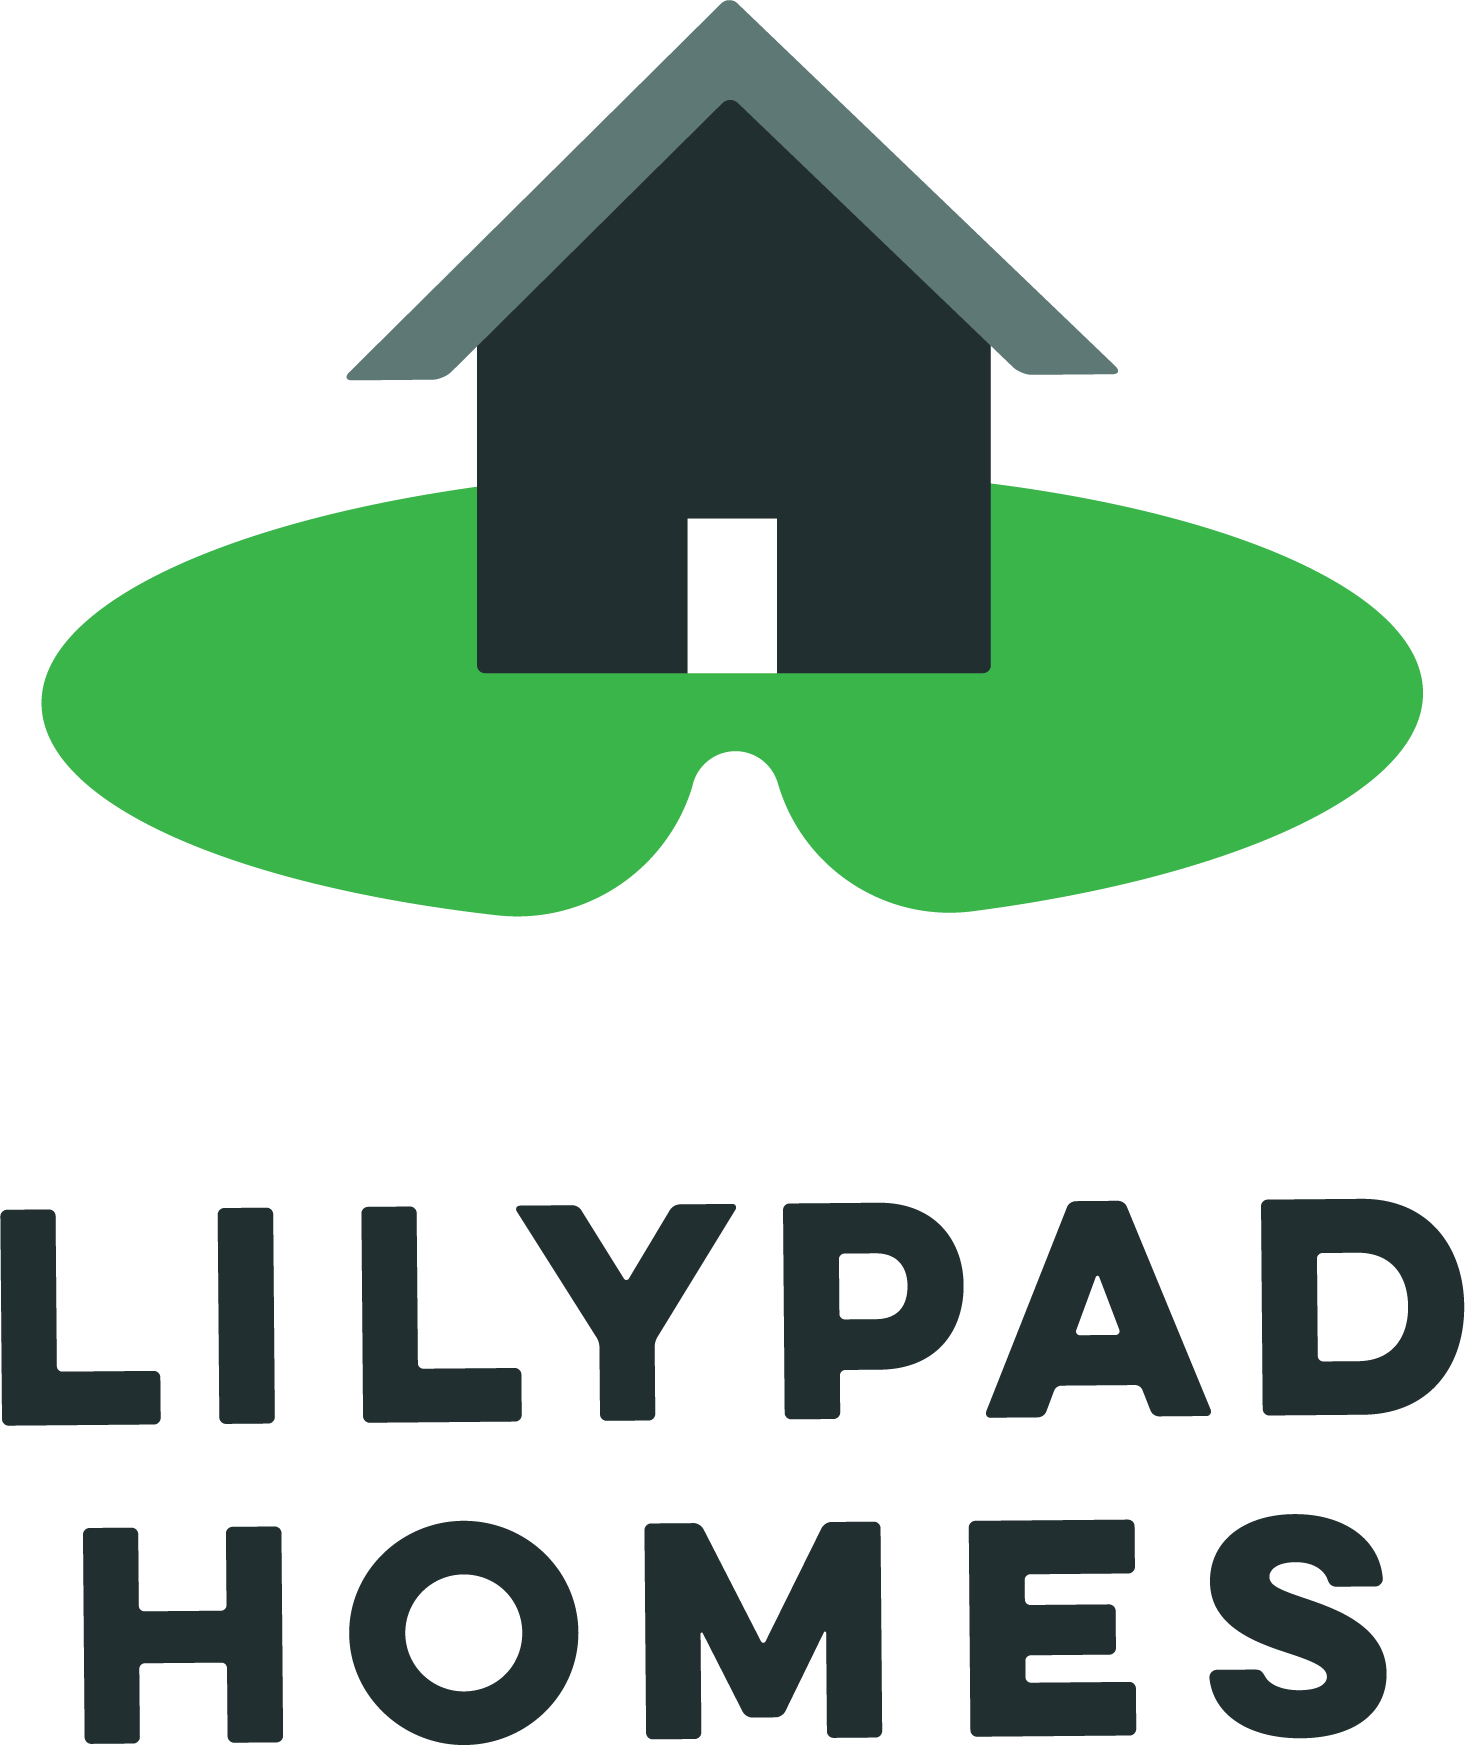 Lilypad Homes